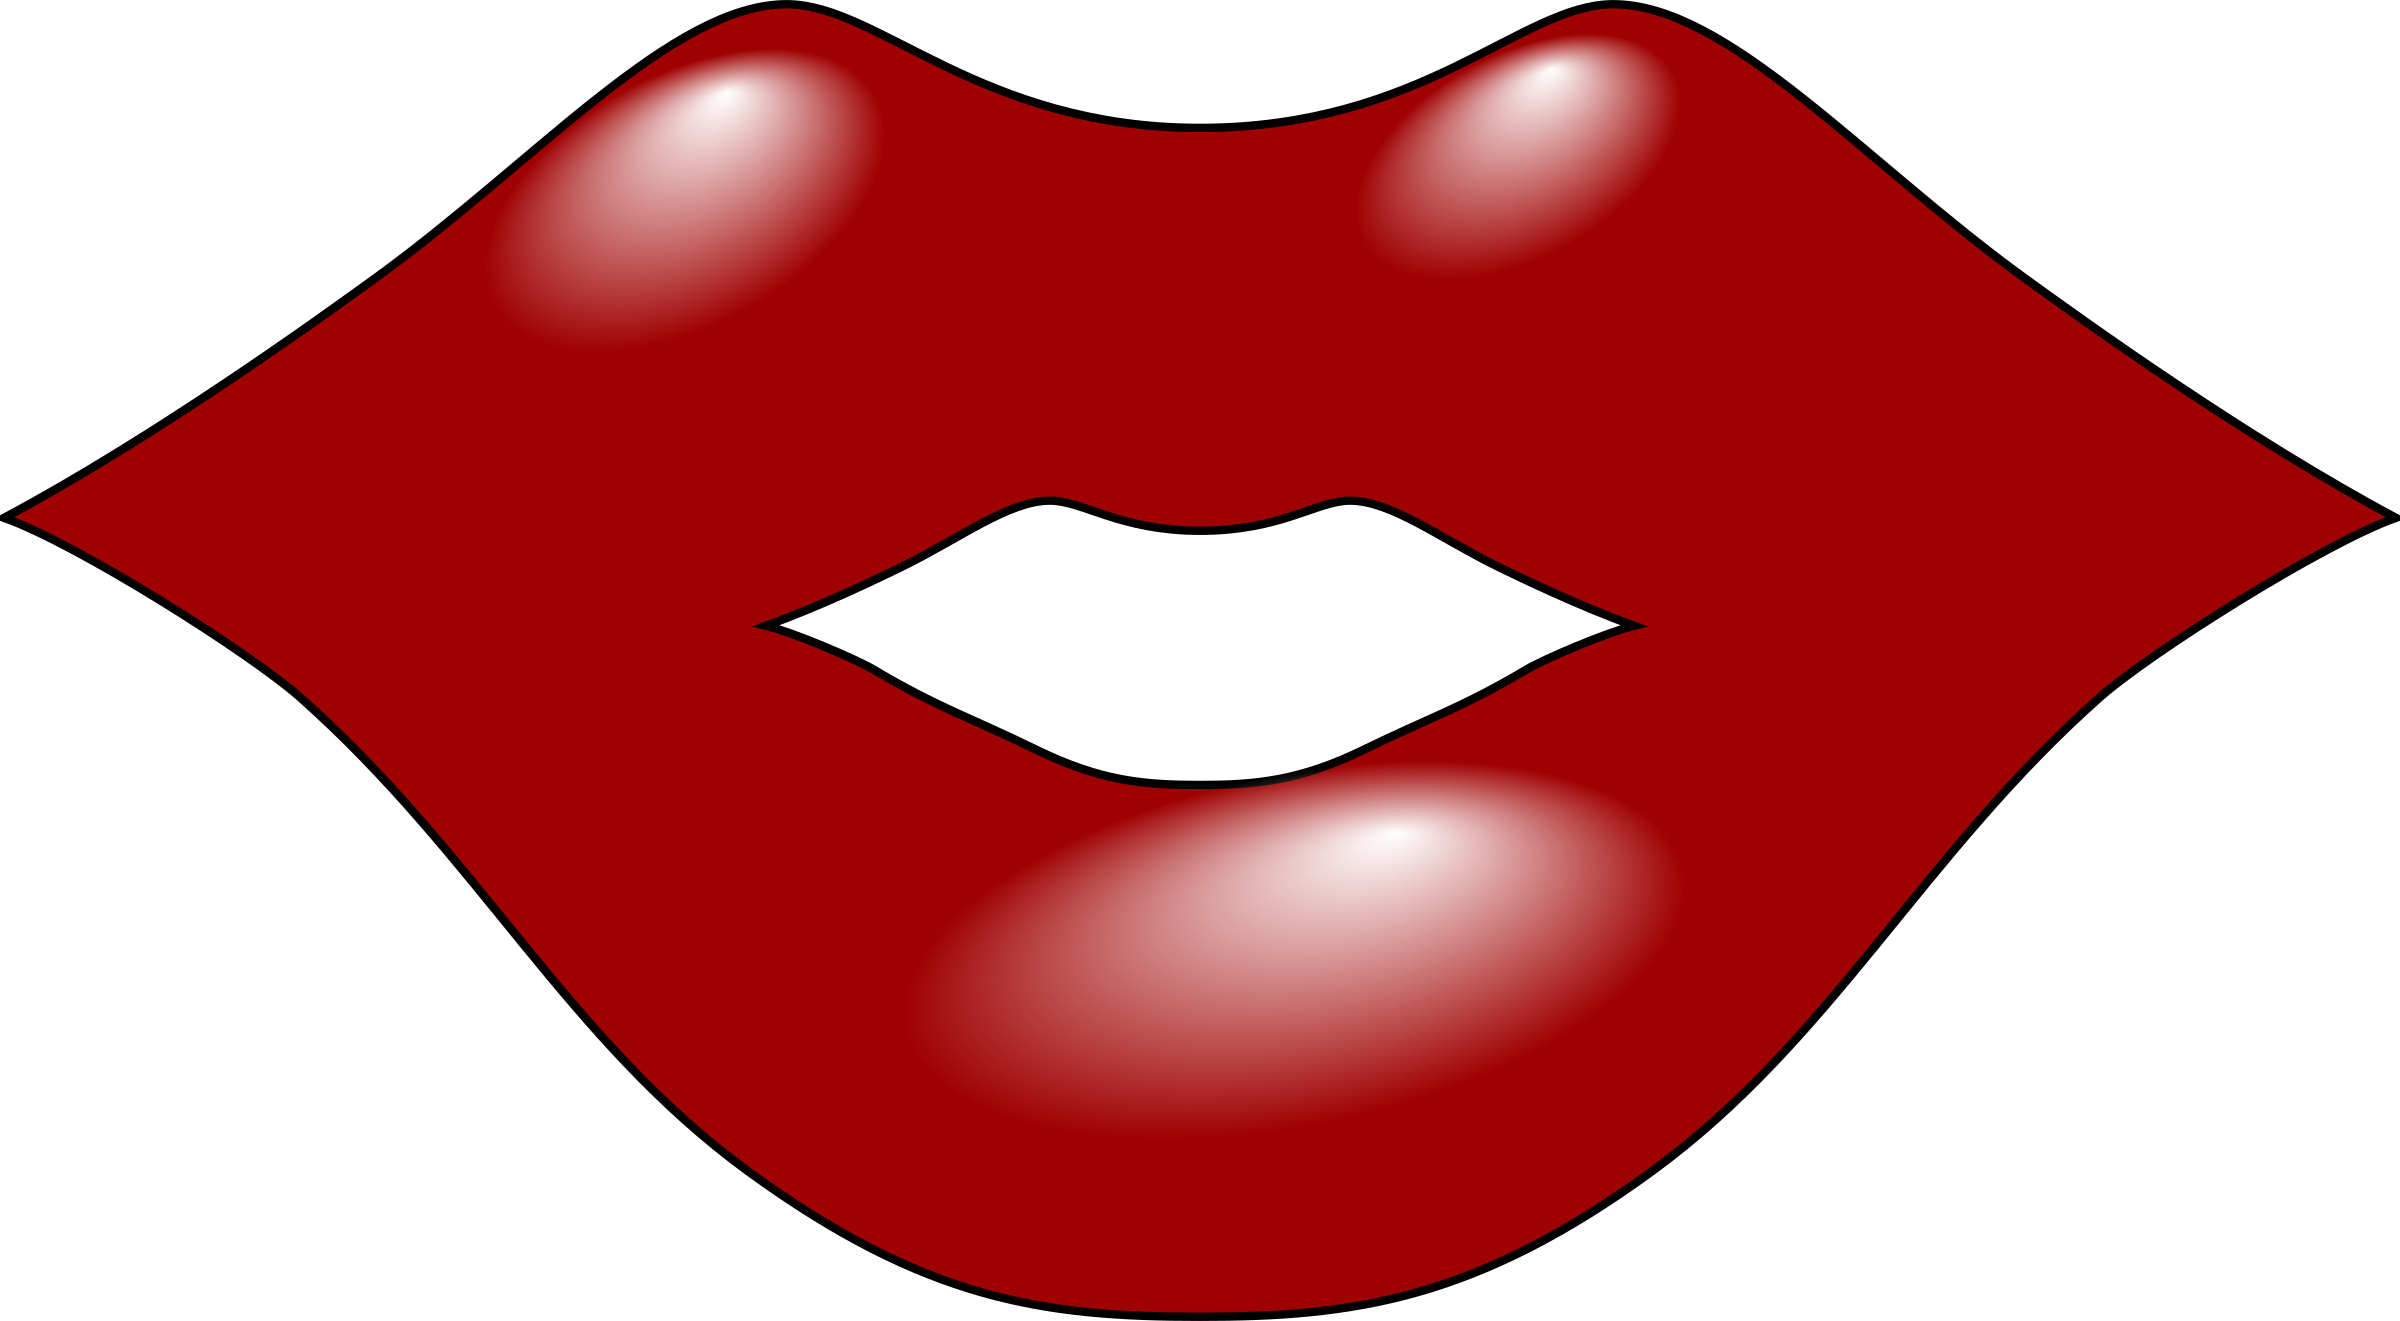 Zipper clipart lips. Cartoon mouth group styles